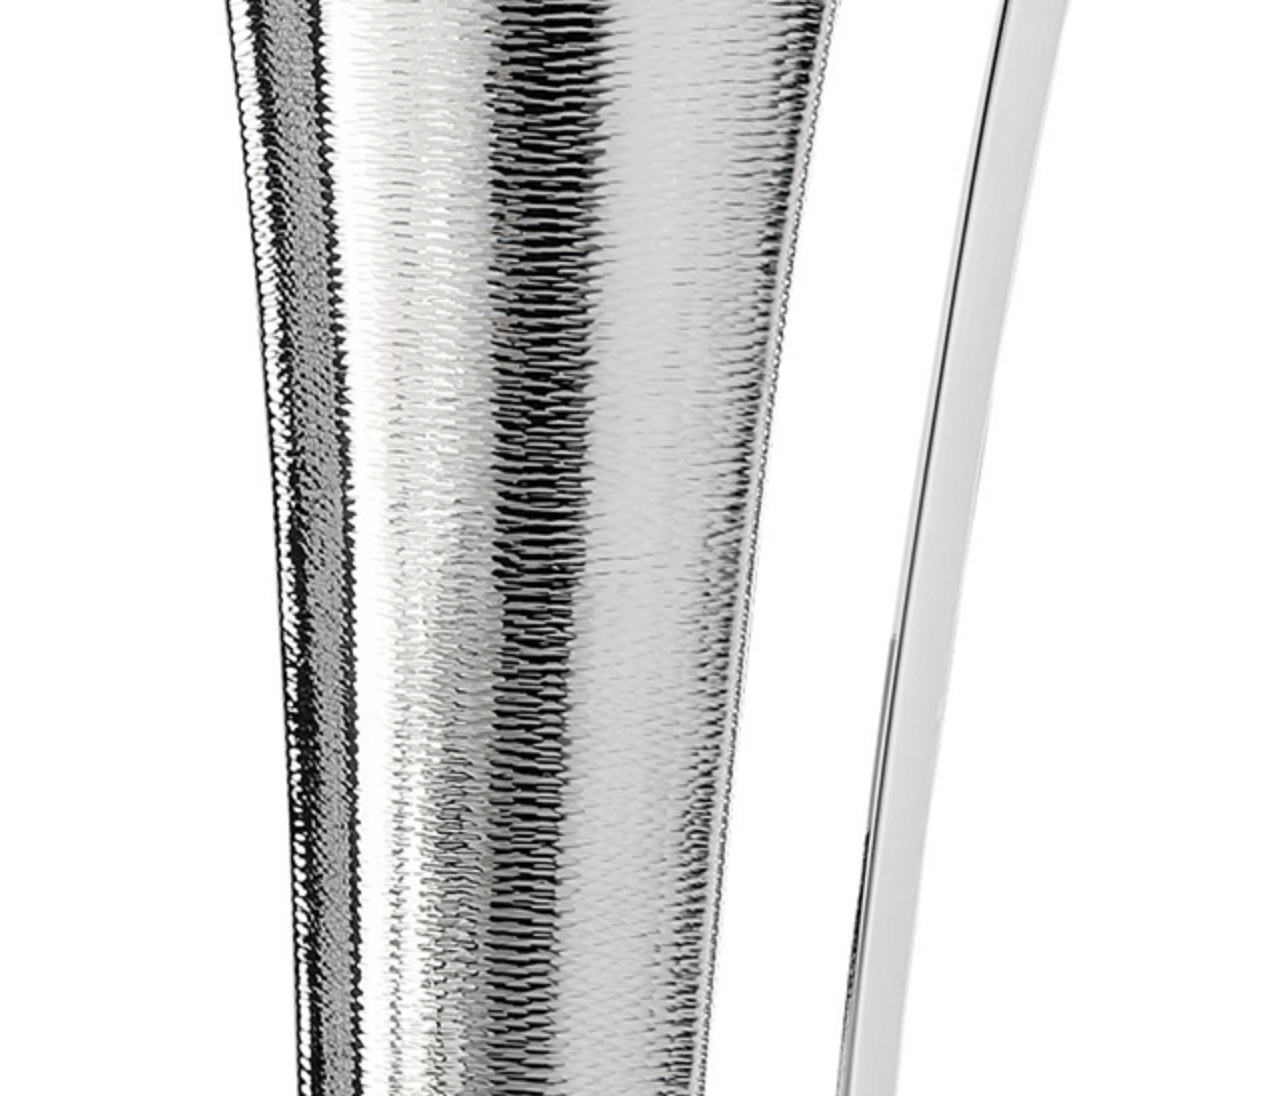 Ermes Pitcher - Sculptural pitcher crafted in a silver-plated alloy with a stunning texture. | Matter of Stuff